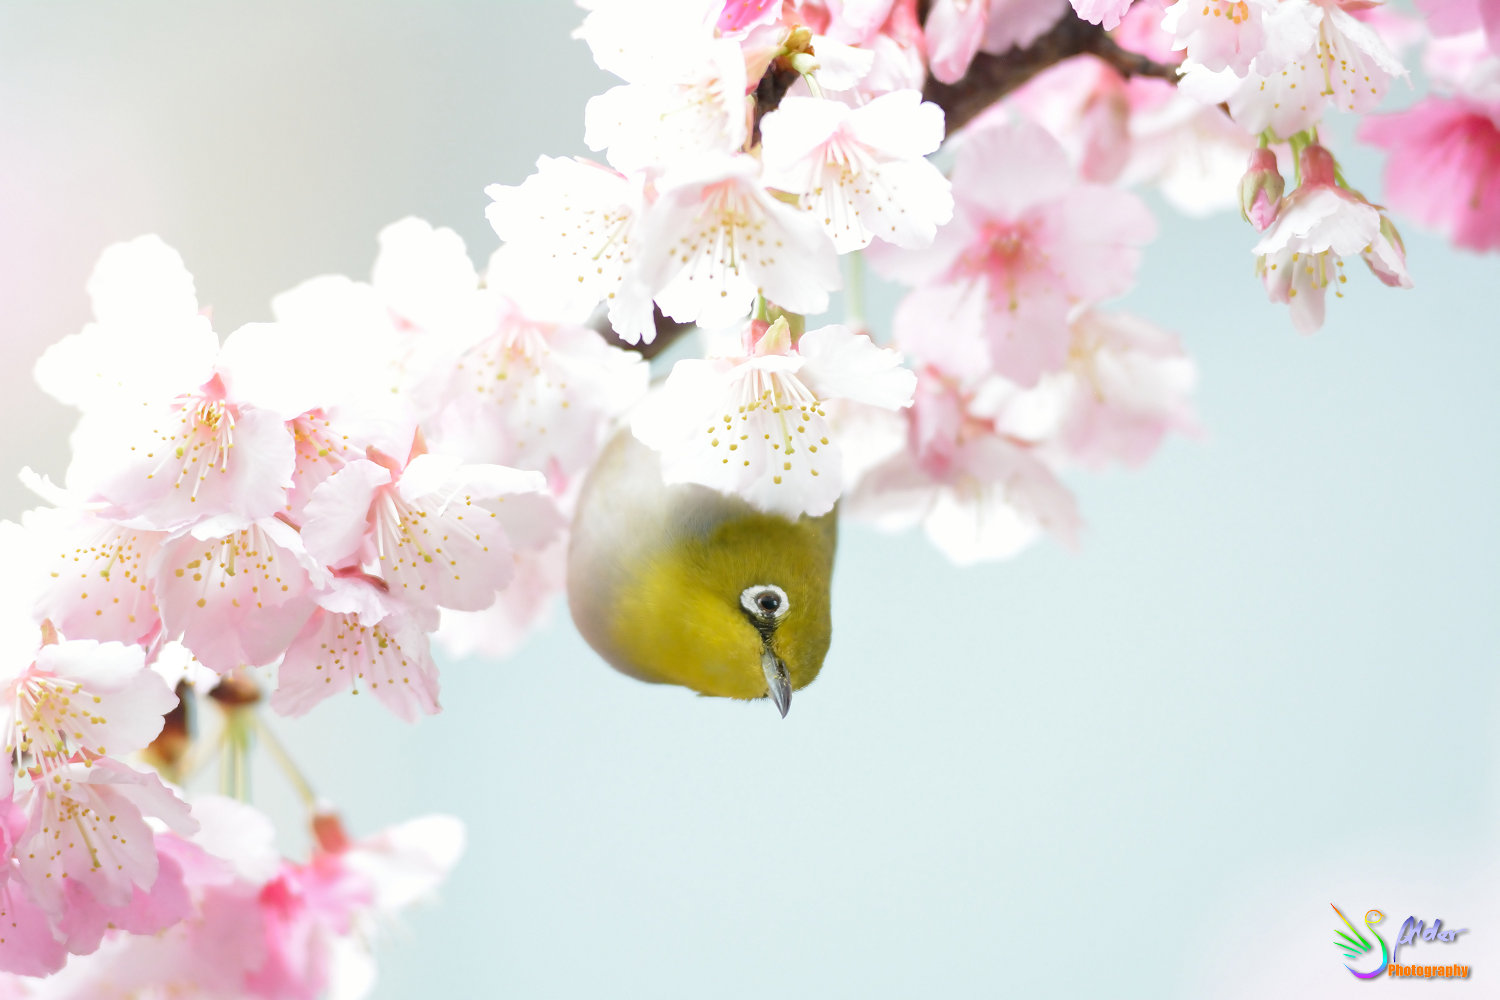 Sakura_White-eye_7236